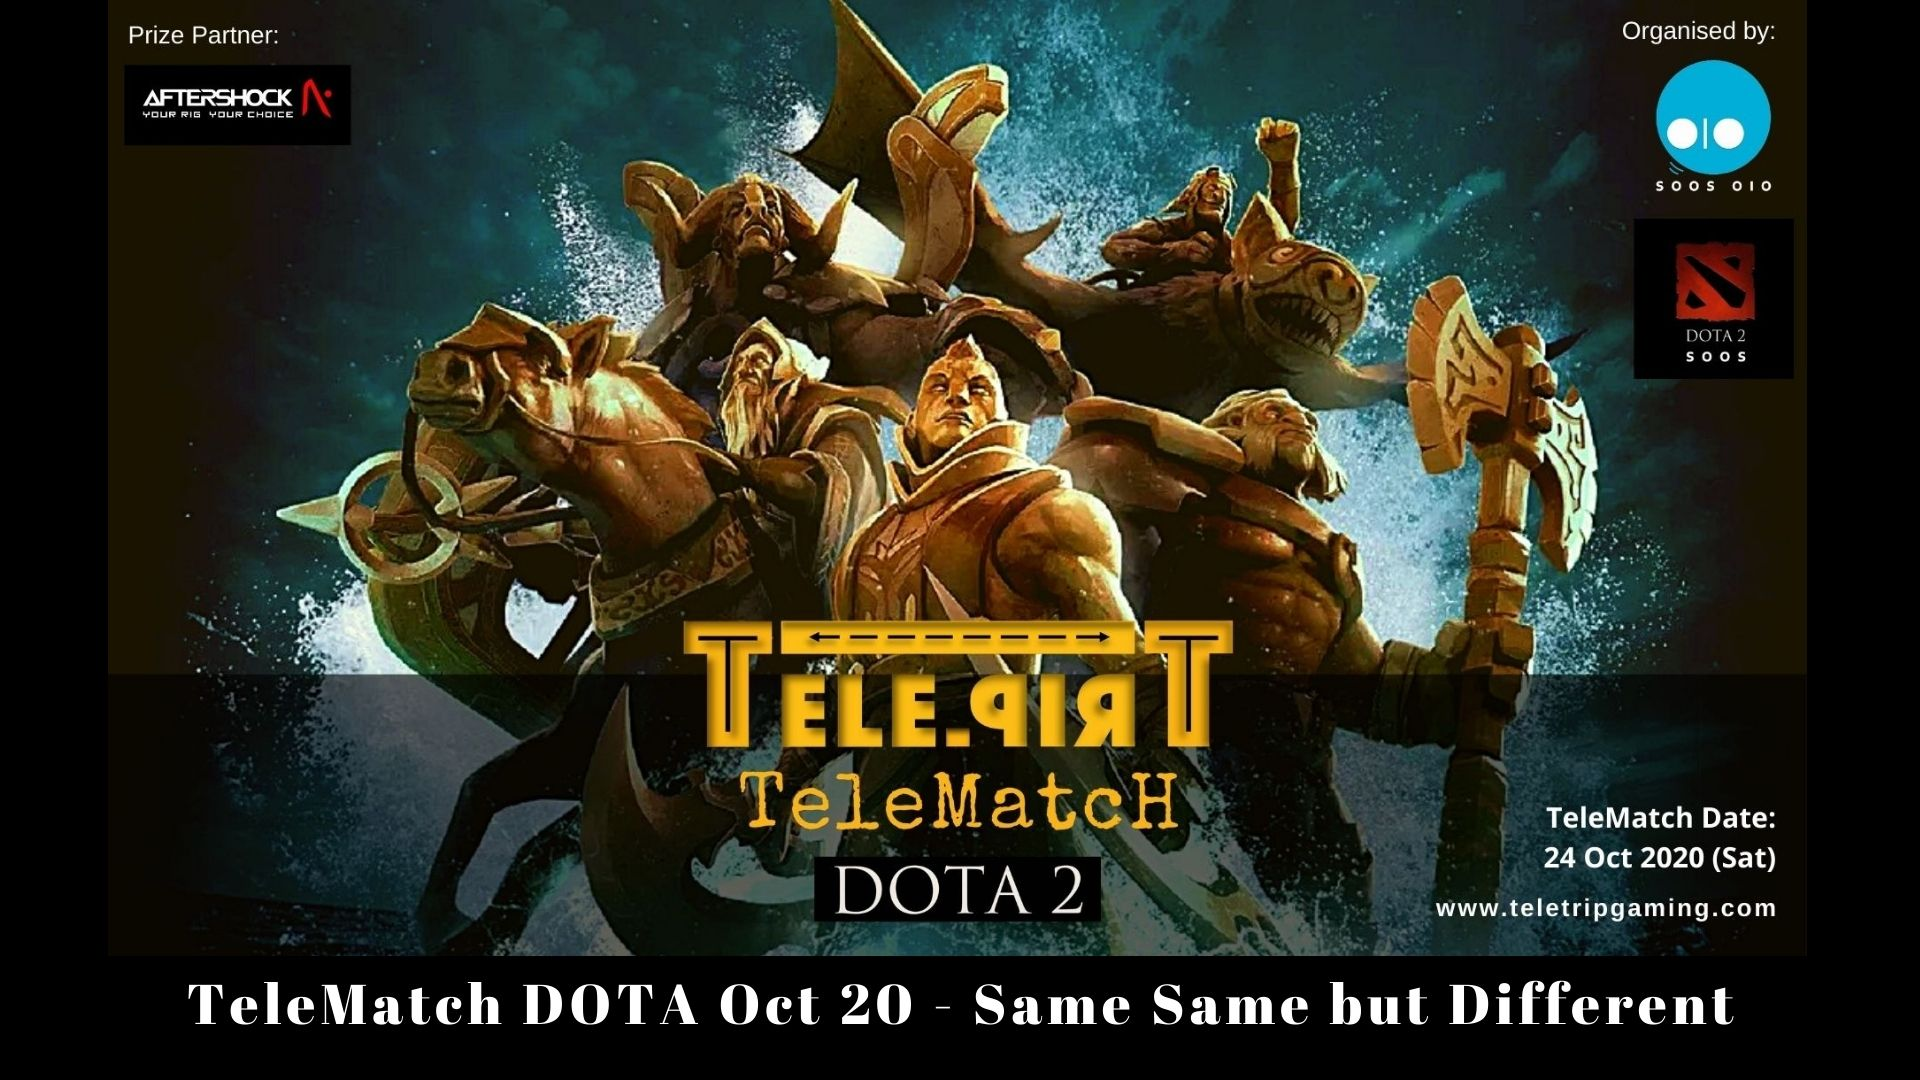 TeleMatch DOTA Oct 20 - Same Same but Different